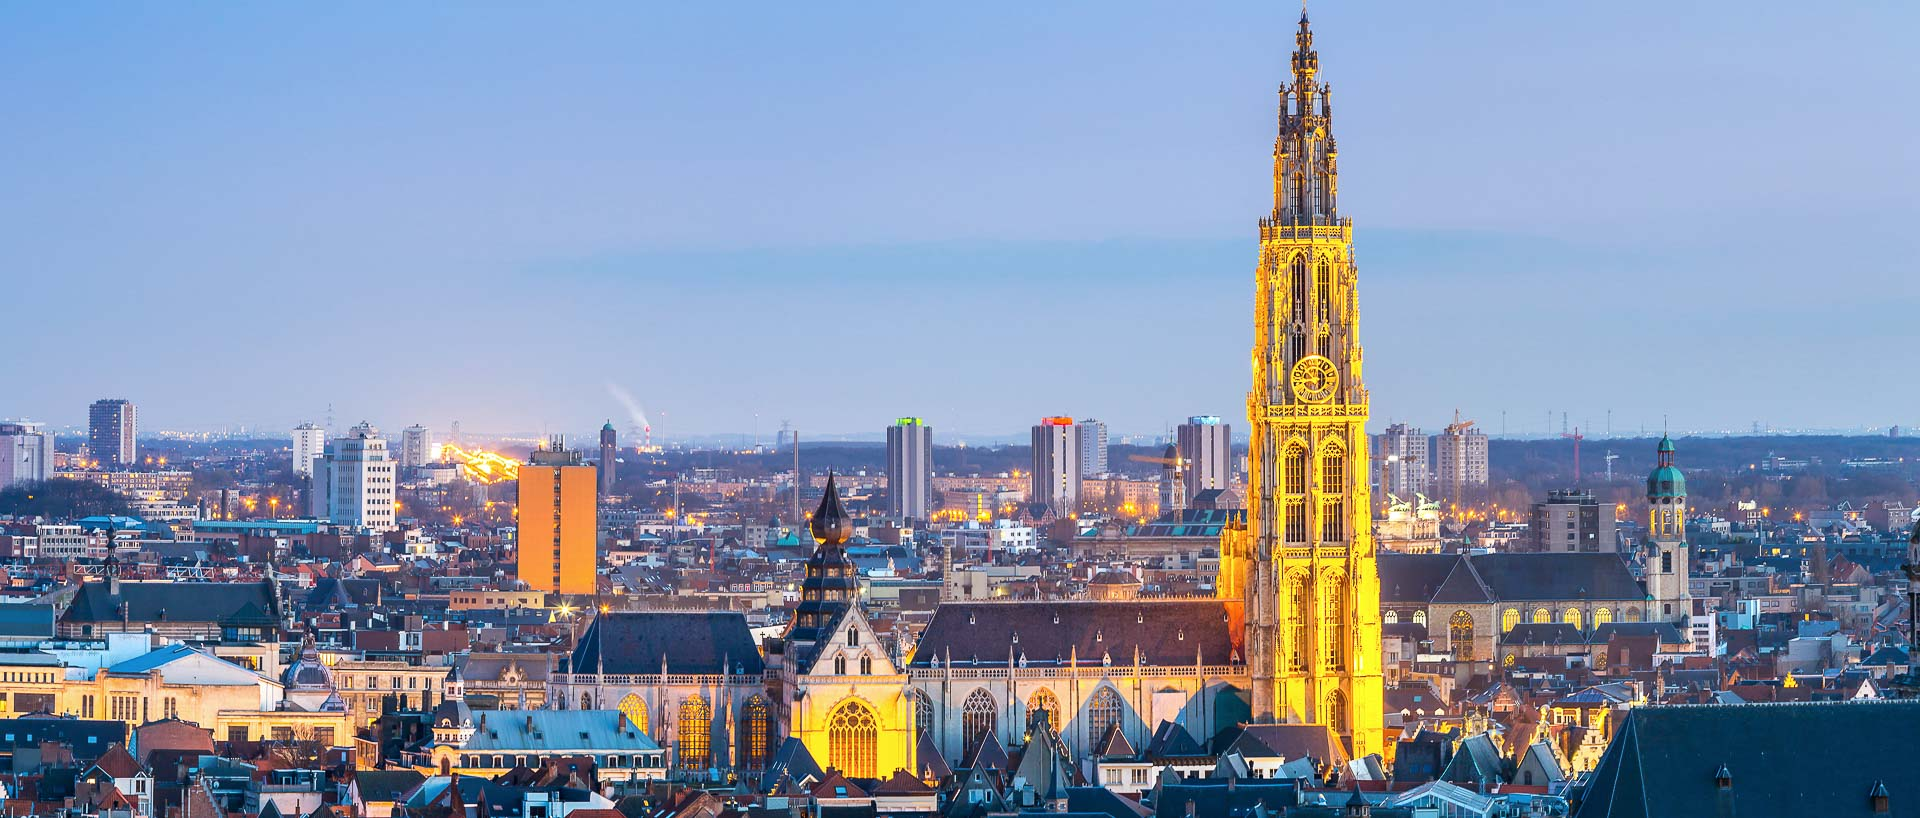 Antwerp Skyline with Cathedral